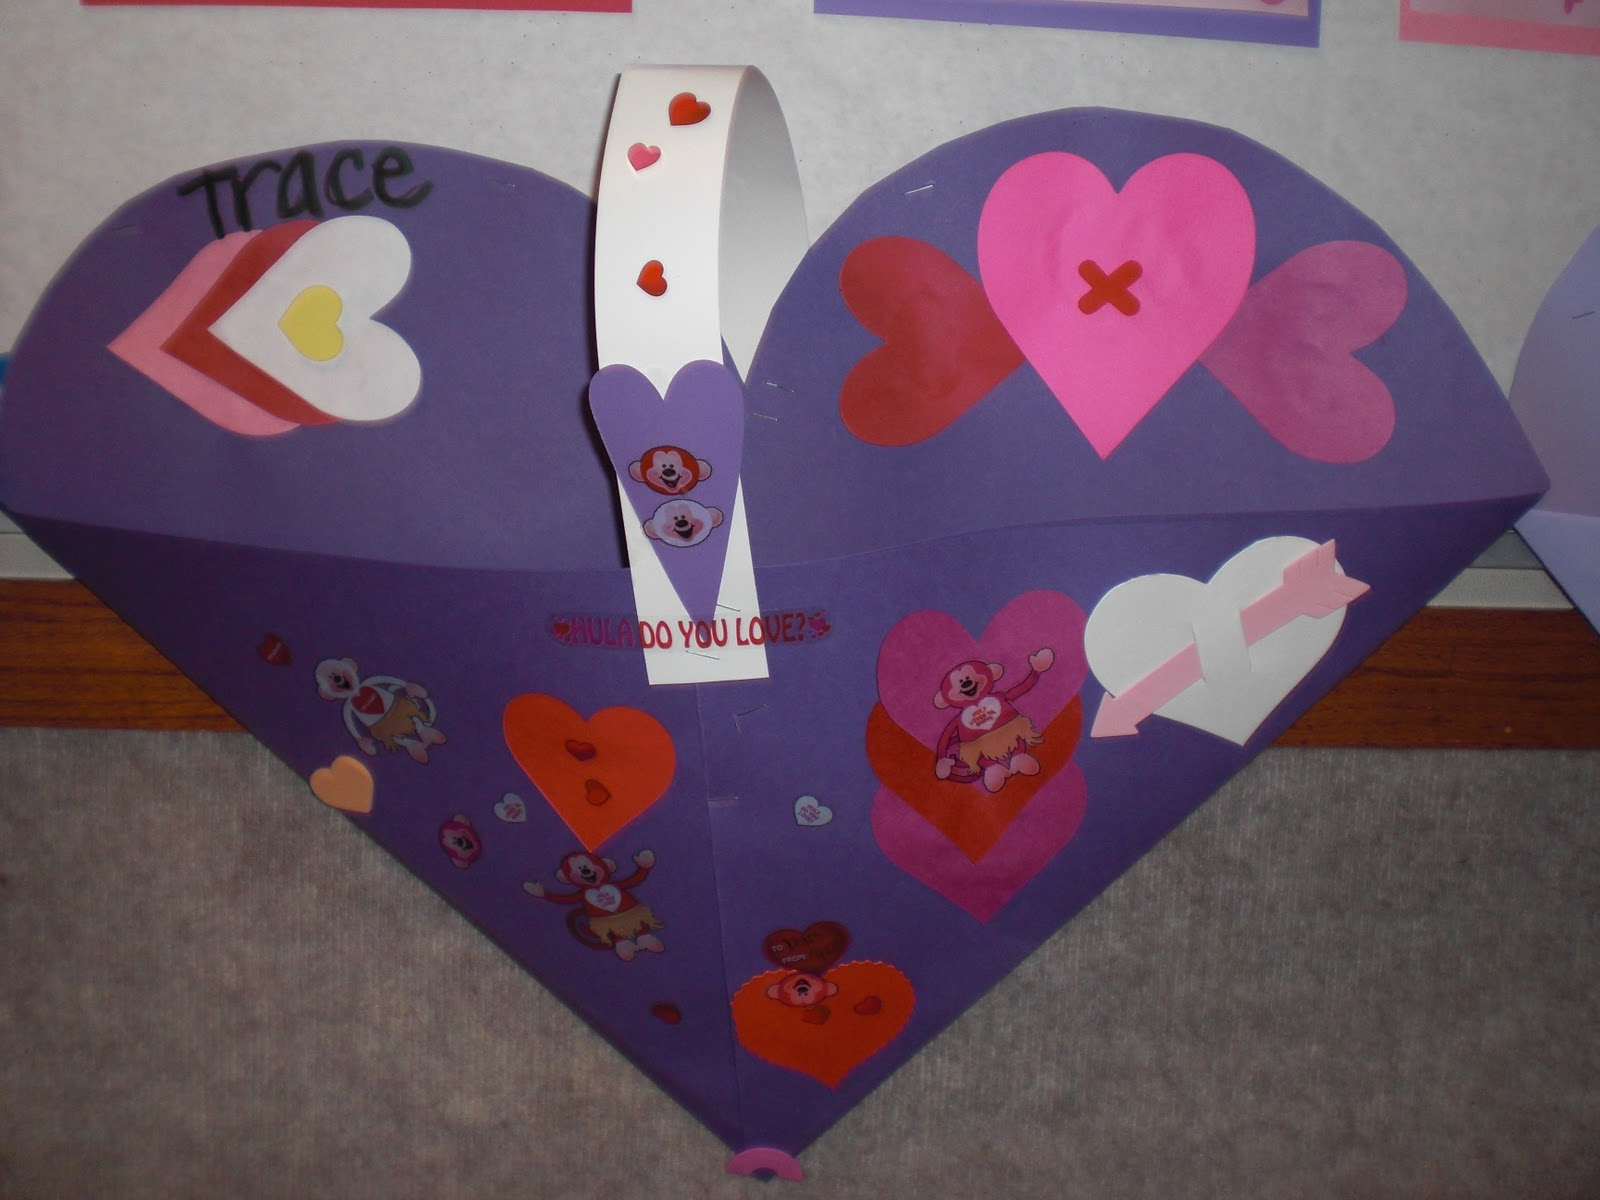 Preschool Classroom Valentine Ideas : Valentines day ideas for preschool class your meme source